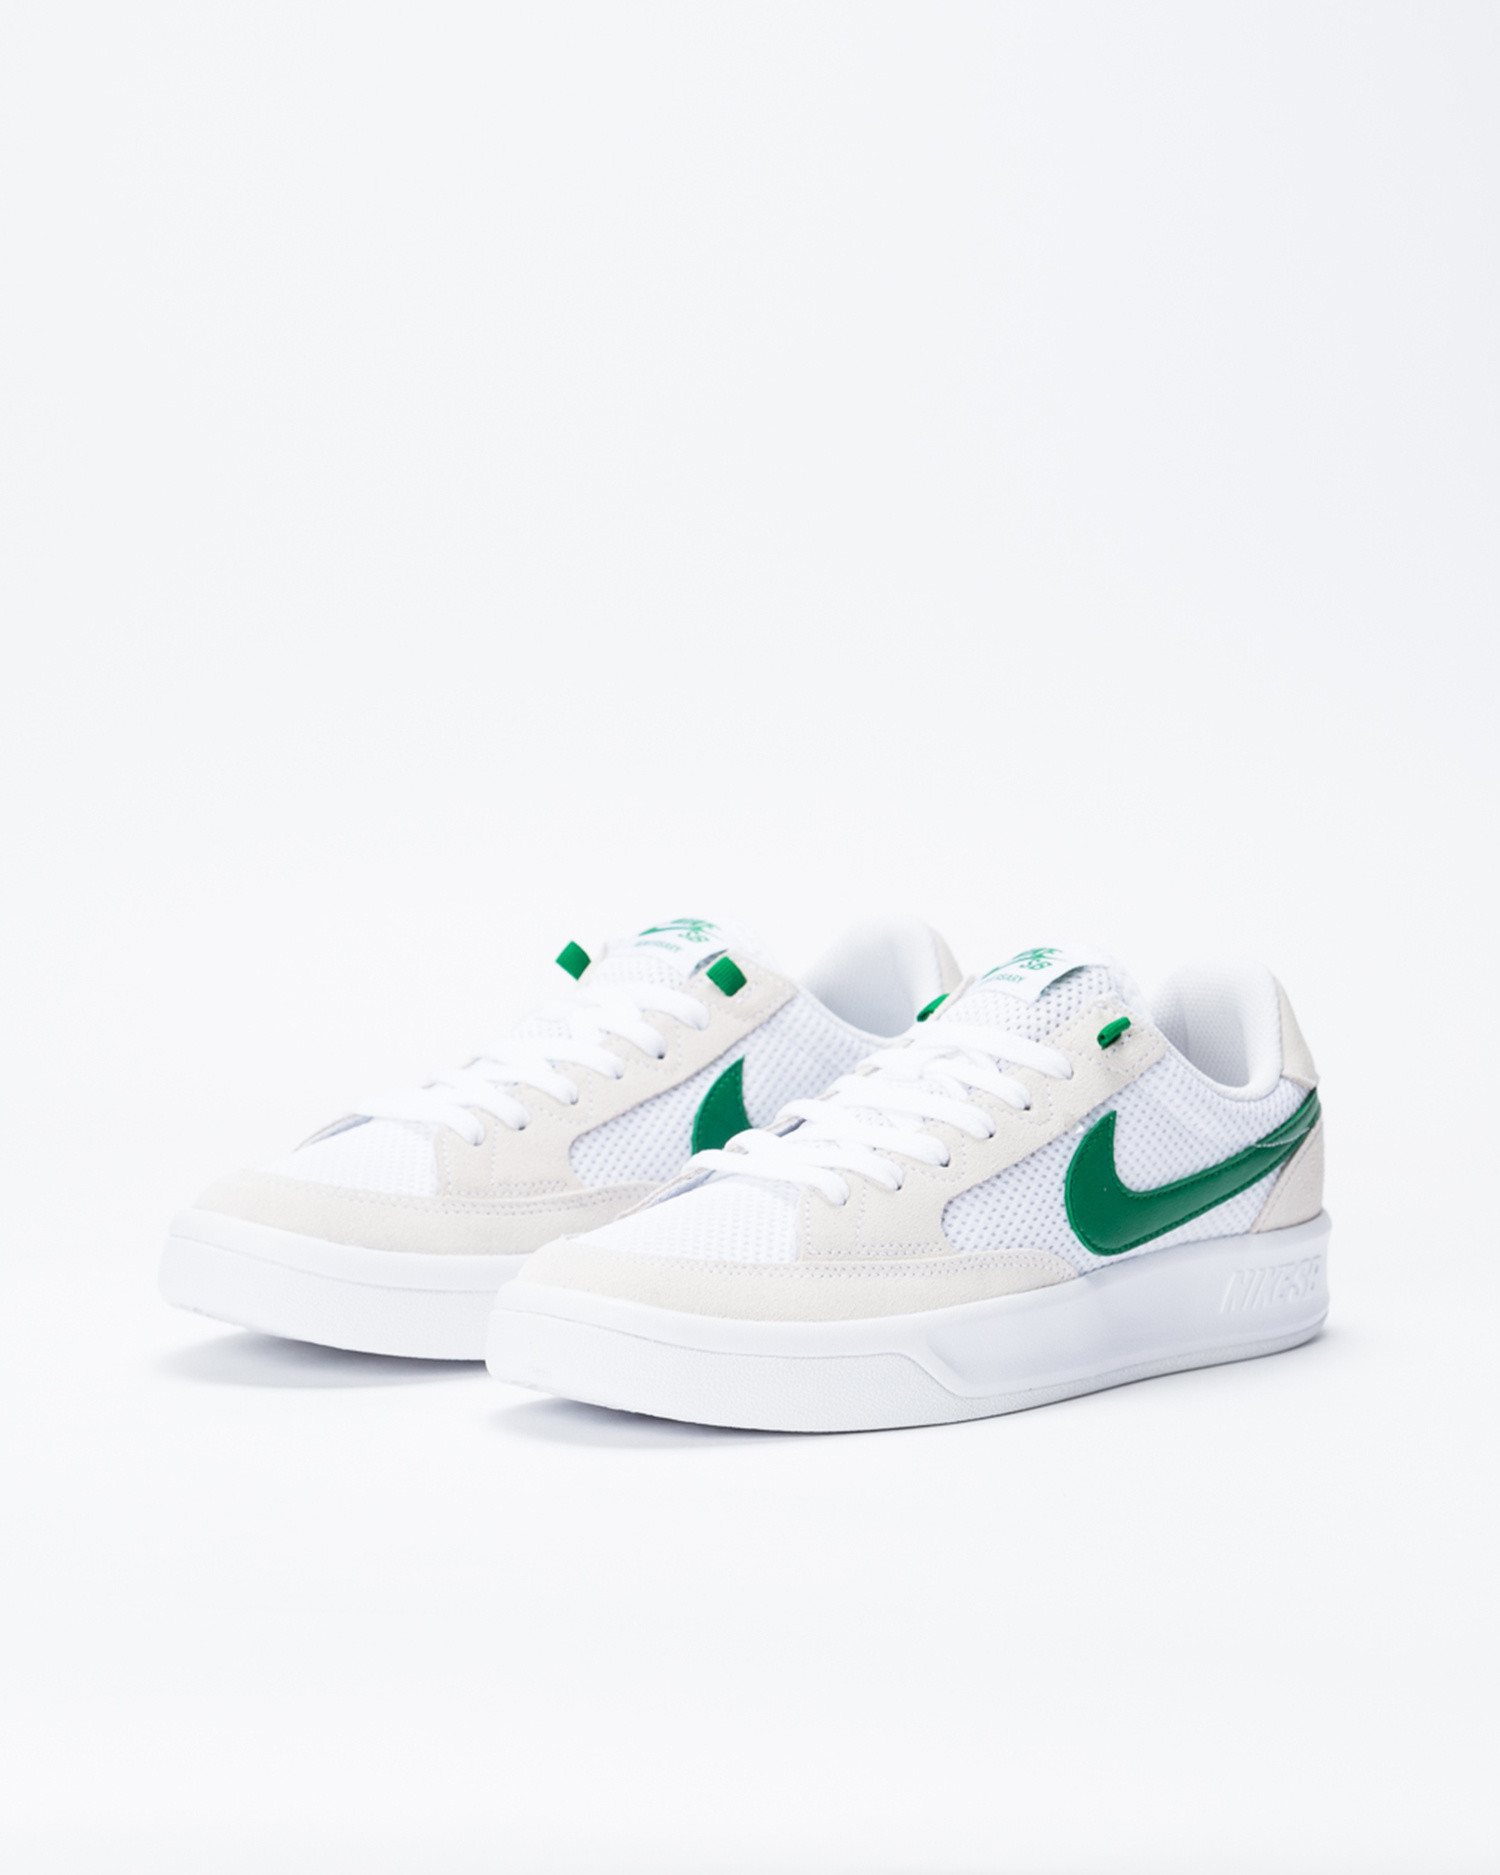 Nike SB Adversary White/Pine Green-White-White